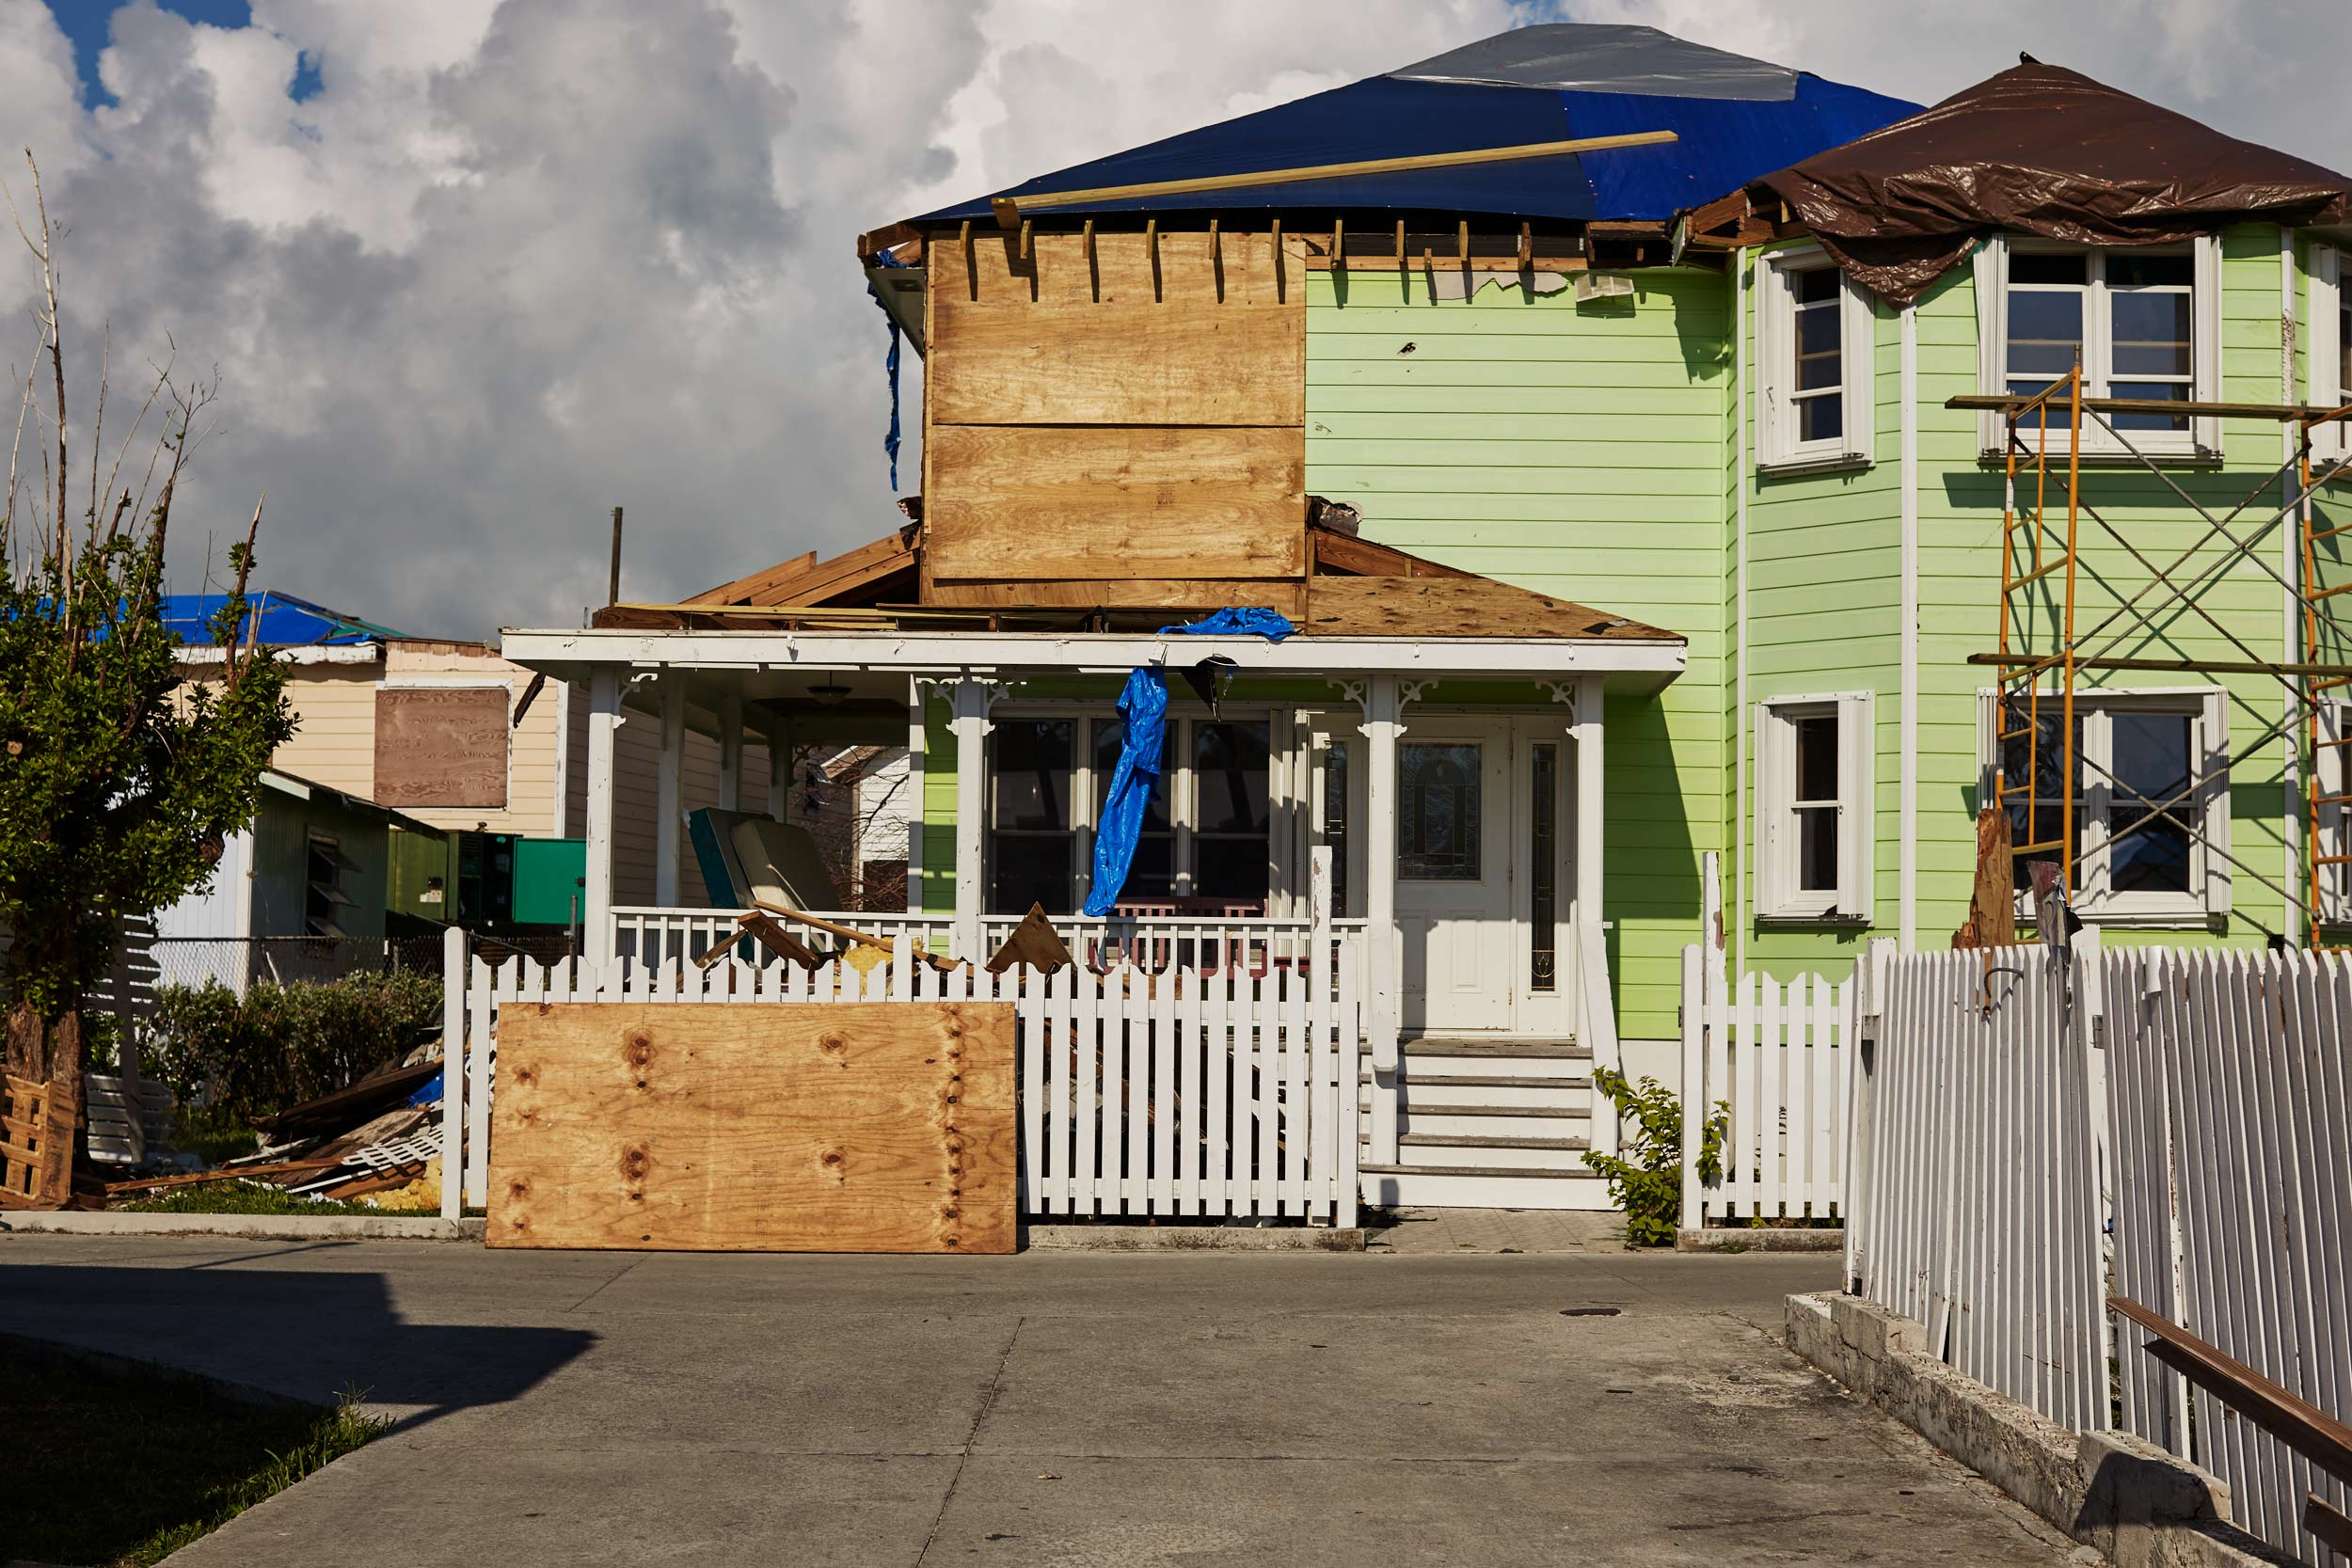 24-H911-BAHAMAS-DESTROYED-HOUSE-3